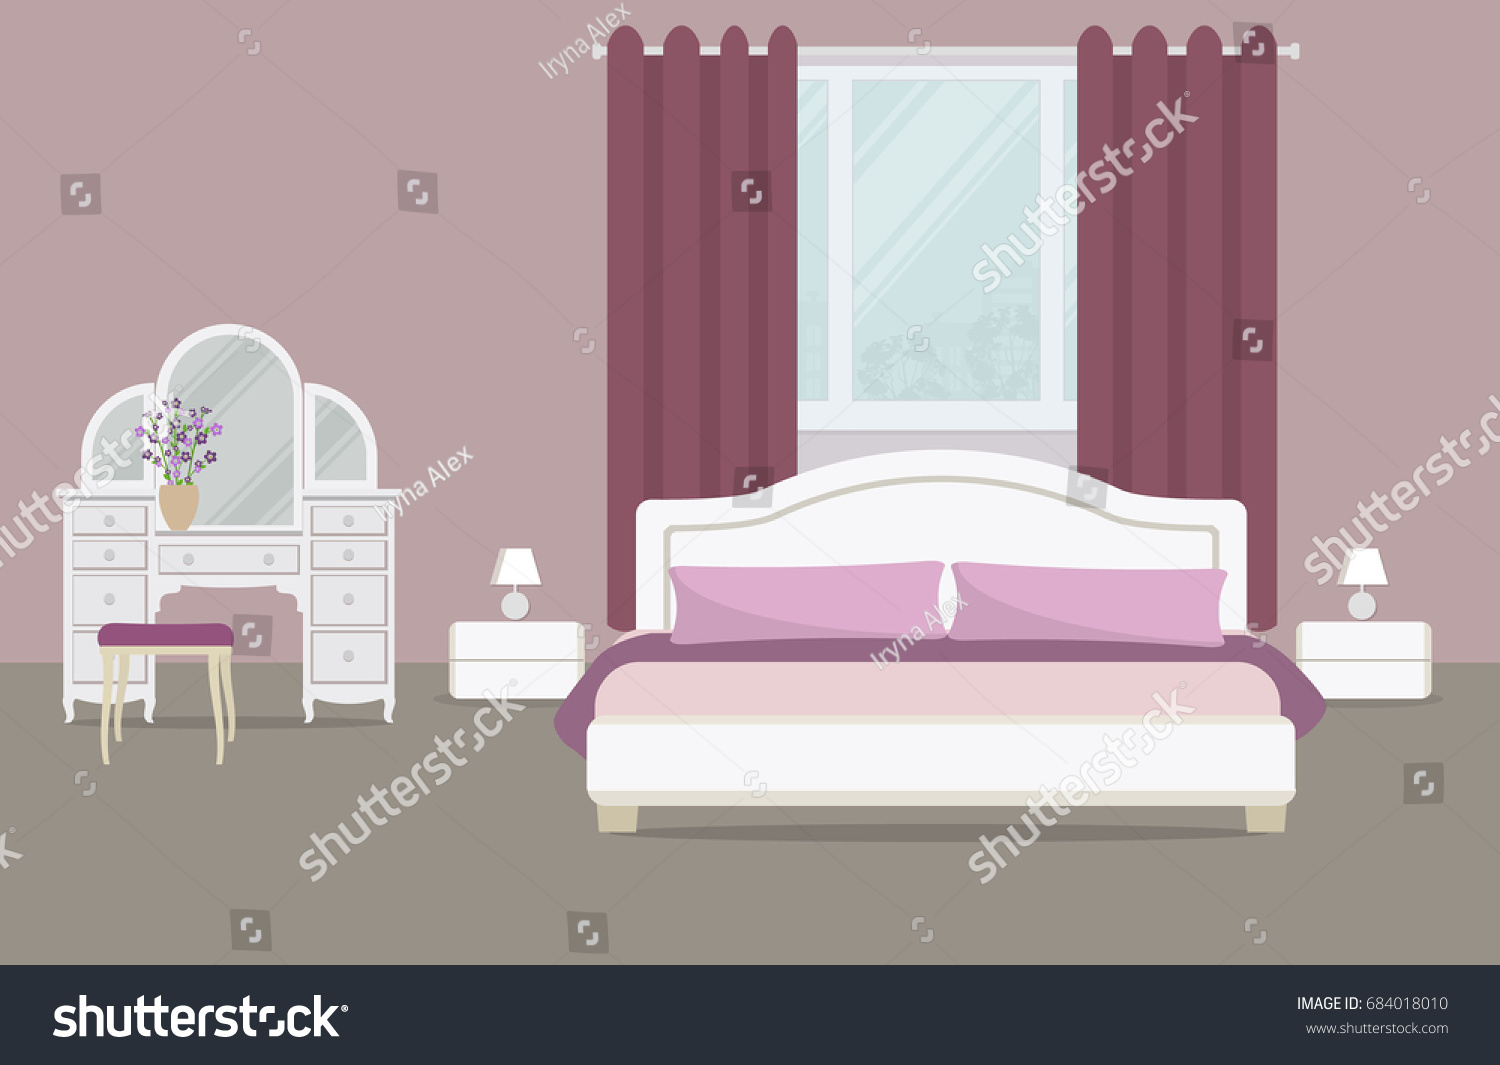 Bedroom purple color there dressing table stock vector 684018010 there is a dressing table a bed with pillows geotapseo Image collections